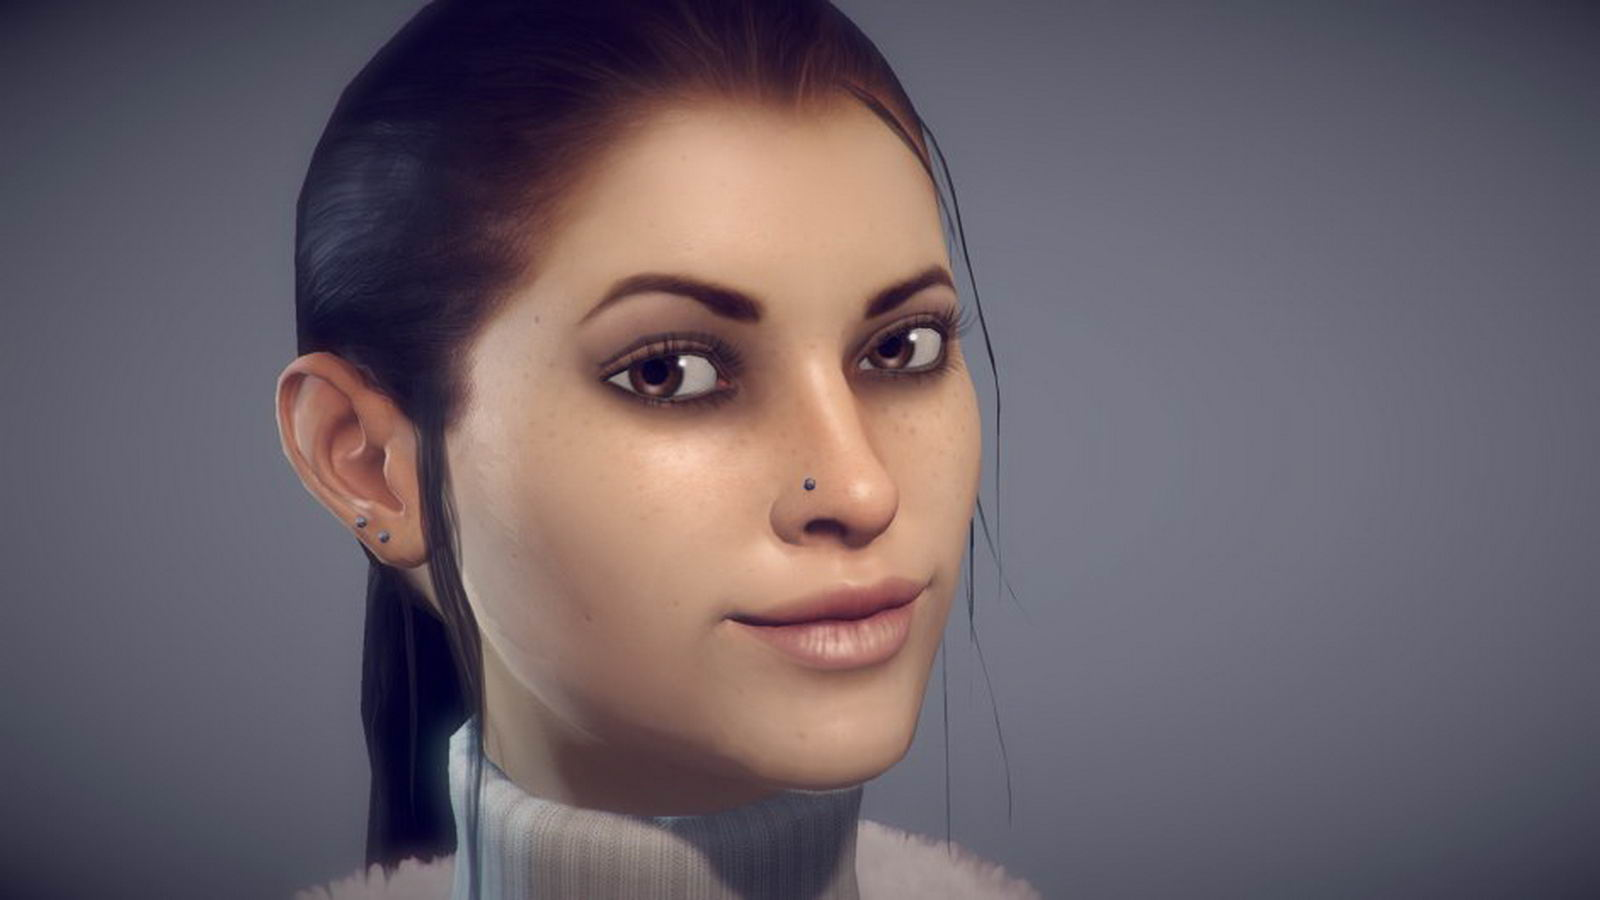 Арт Dreamfall Chapters: Book One - Reborn